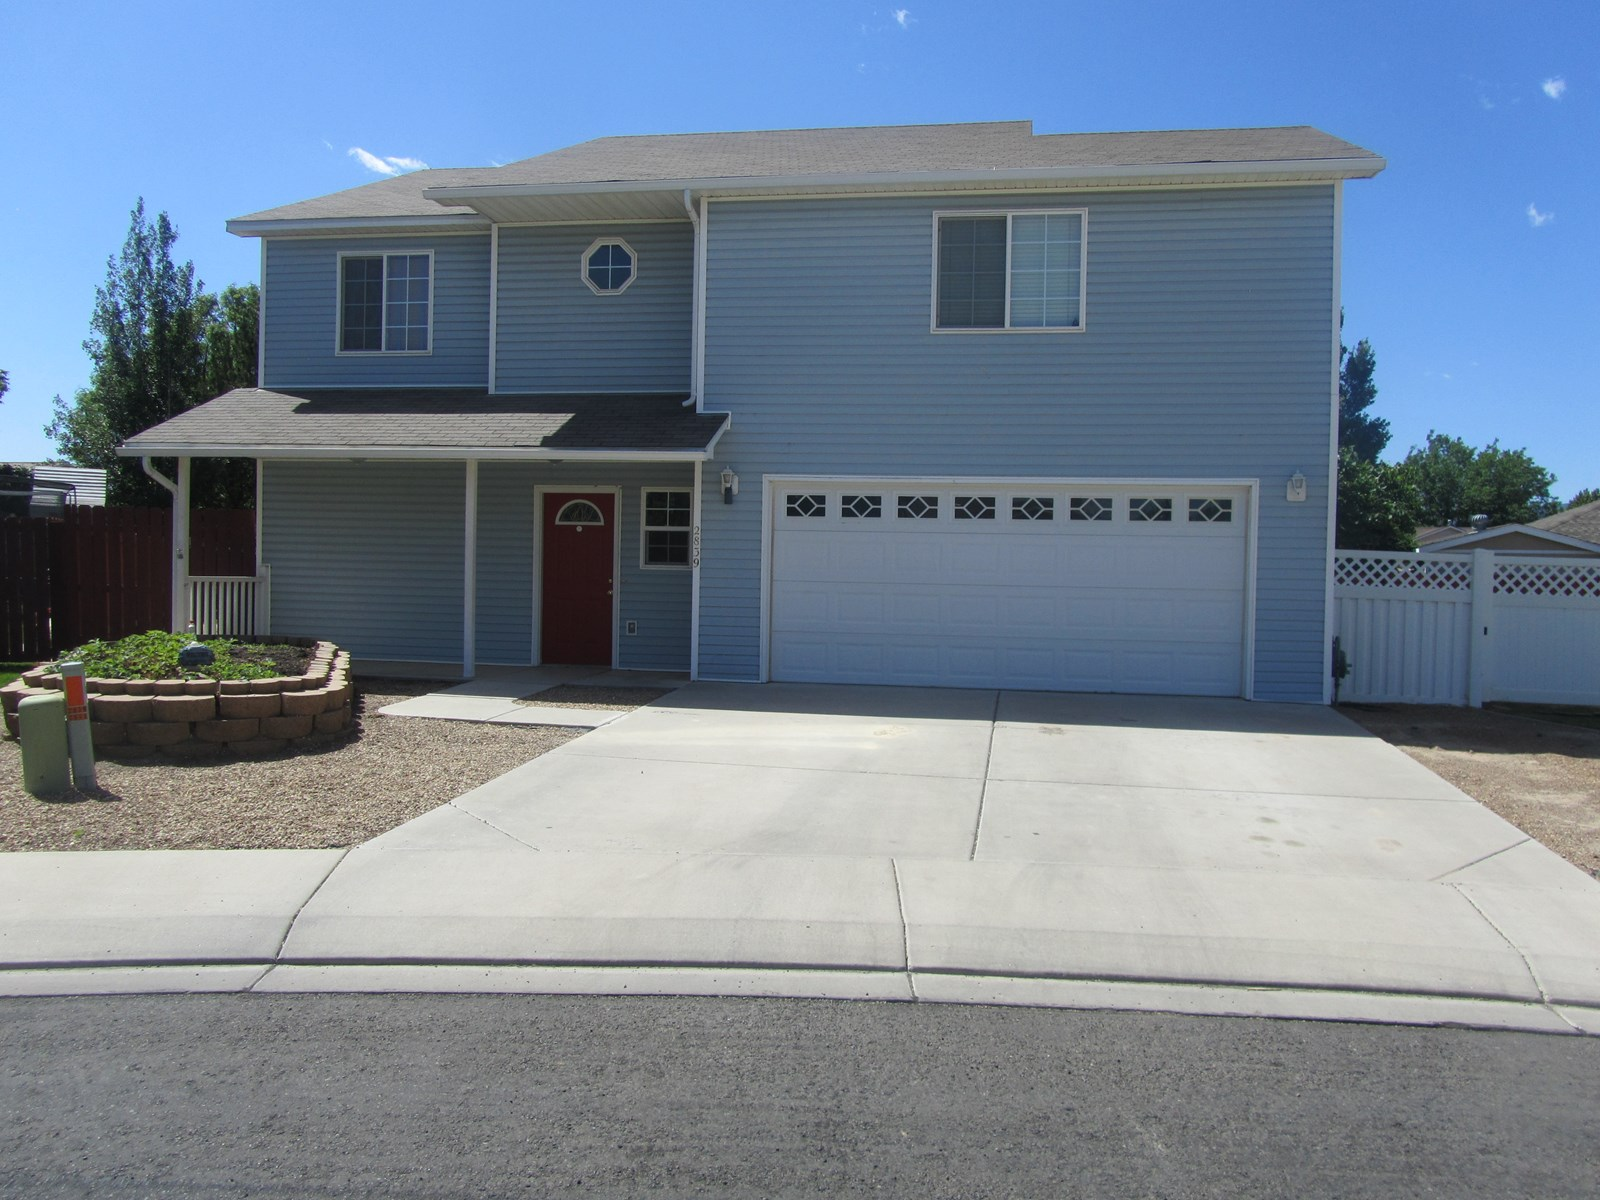 Home for sale in Grand Junction, Colorado